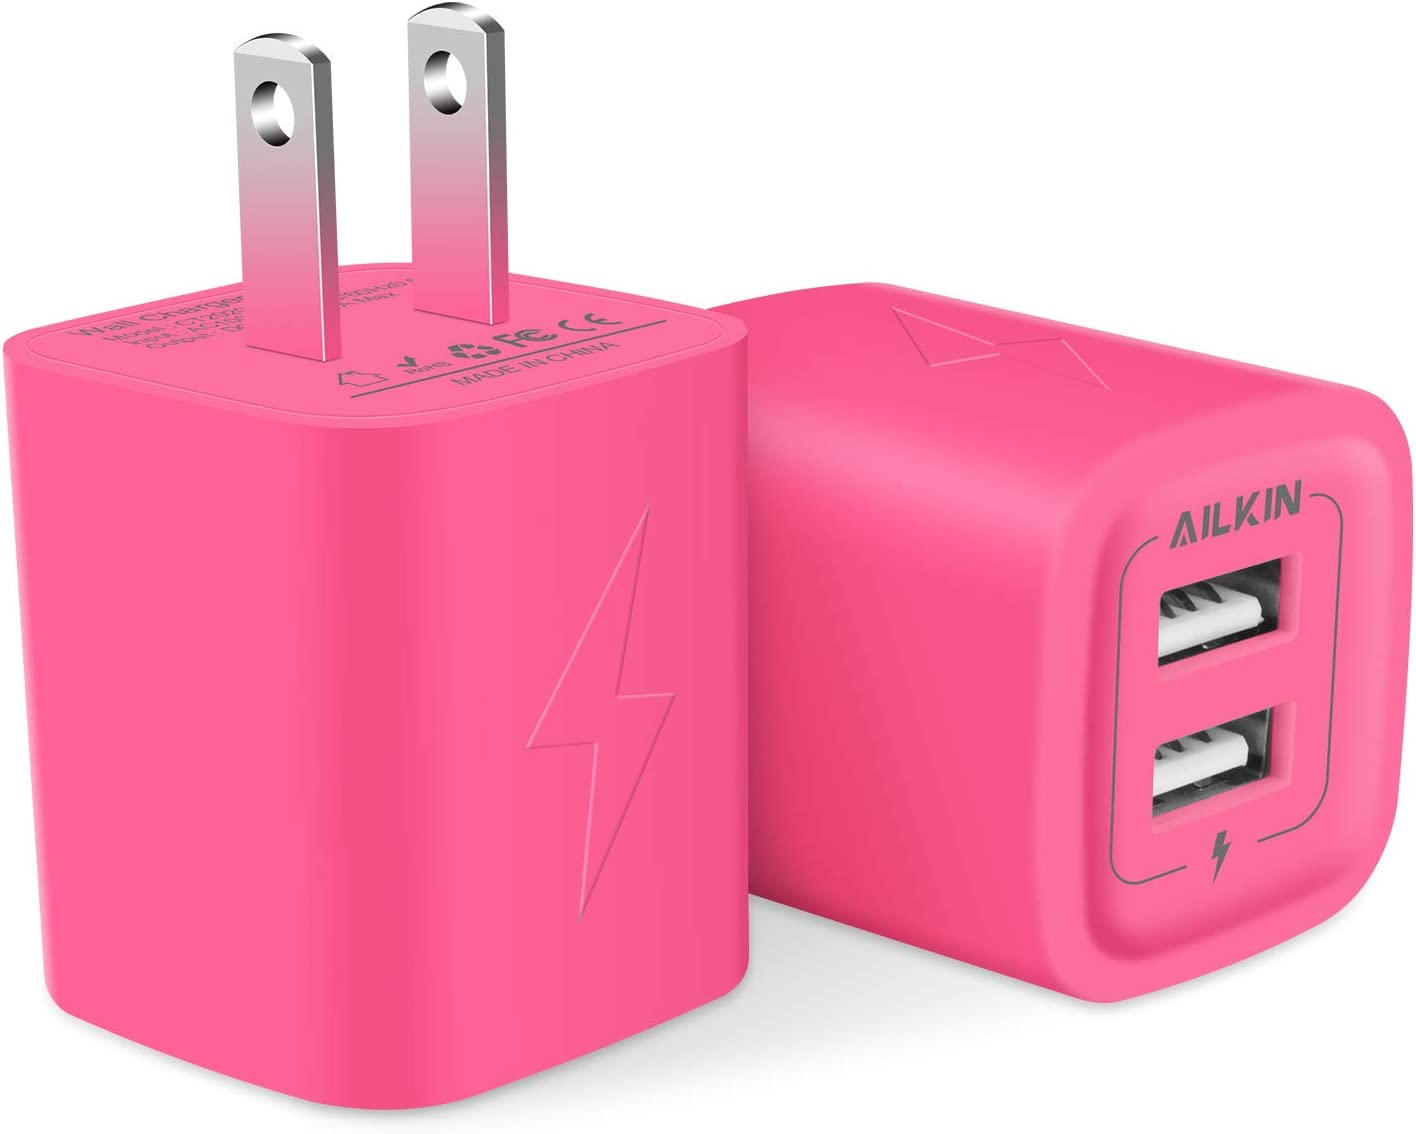 Wall Charger AILKIN USB Plug Charging Power Block Fast Adapter Fresno OFFicial Mall